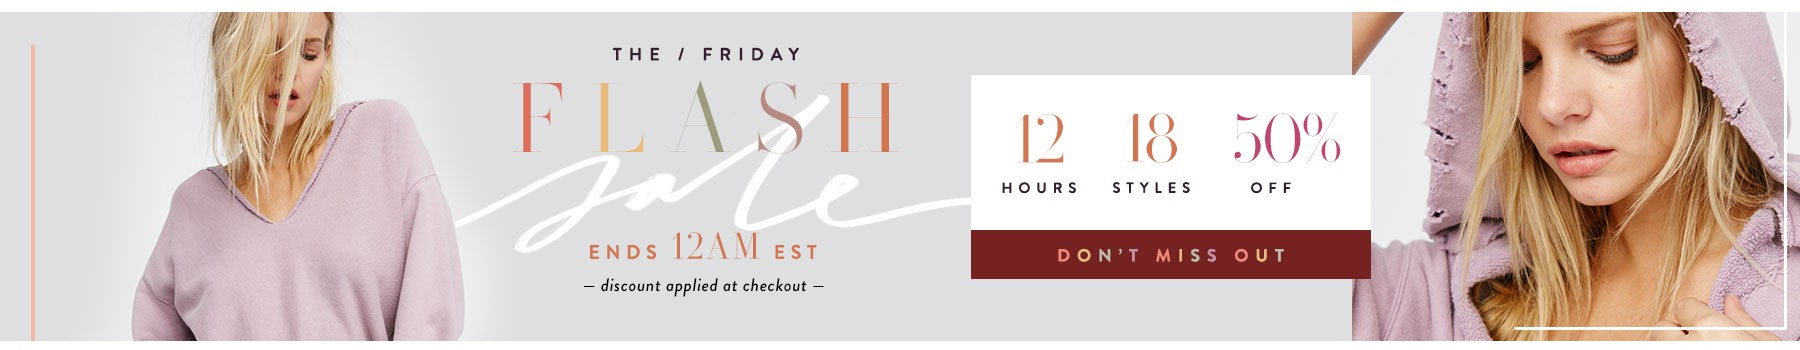 Shop the Flash Sale at Free People